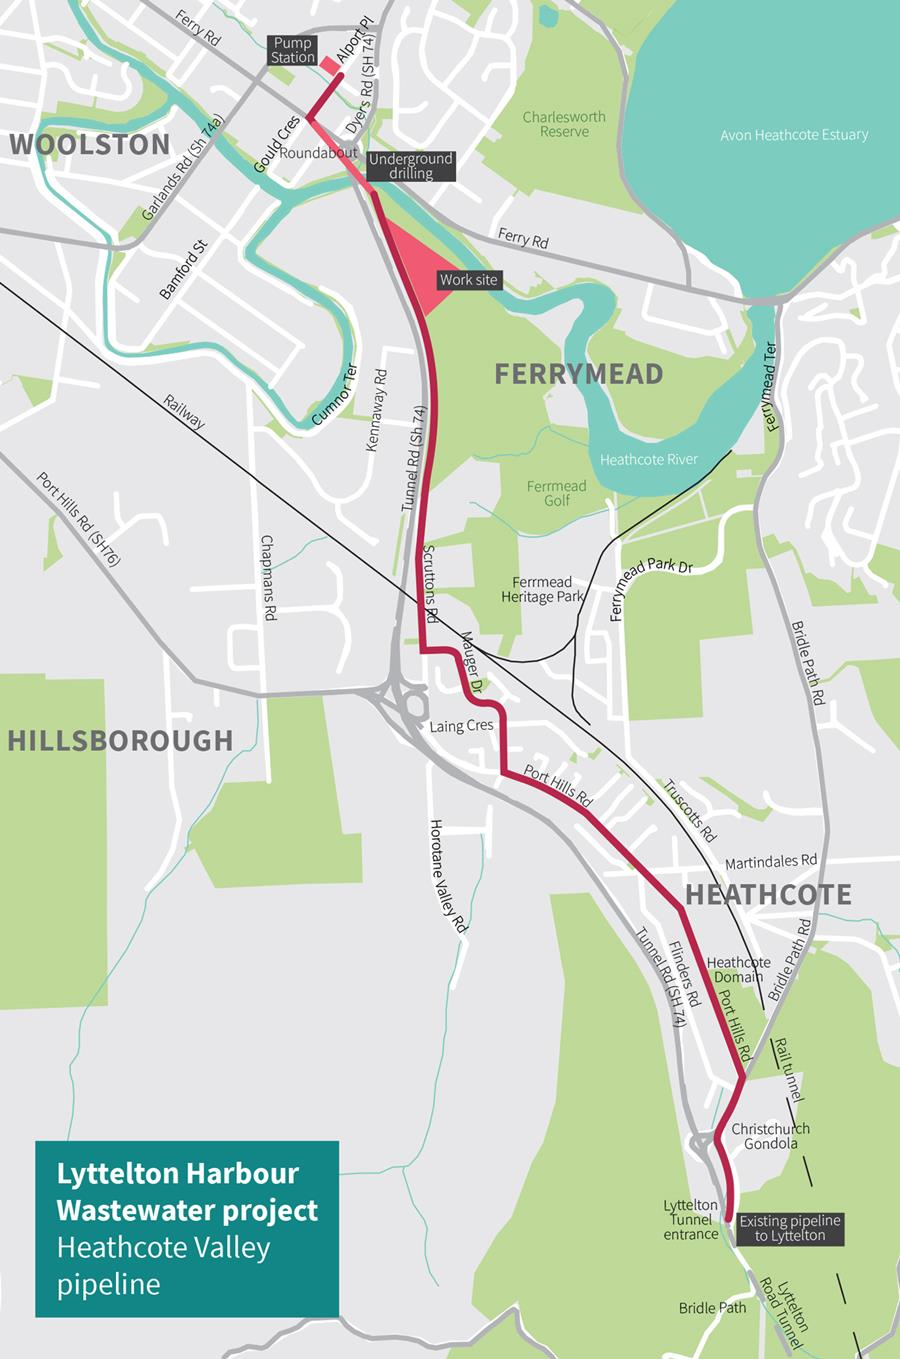 Map of the Heathcote Valley pipeline